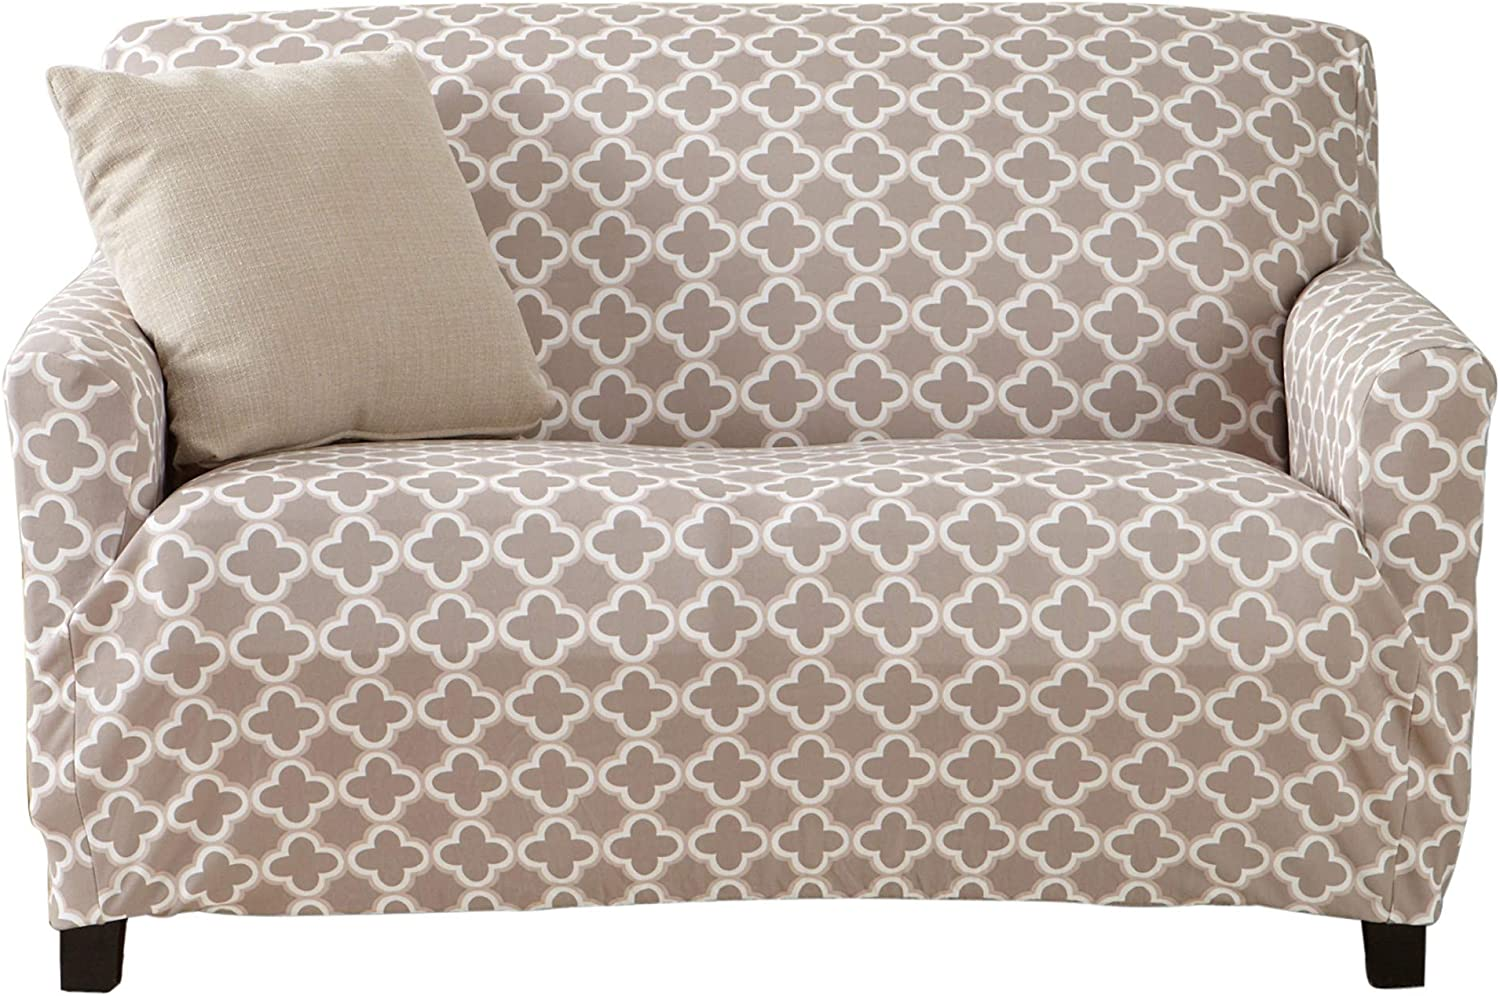 Printed Twill Love Seat Slipcover. One Piece Stretch Loveseat Cover. Strapless Love Seat Cover for Living Room. Fallon Collection Slipcover. (Love Seat, Beige)